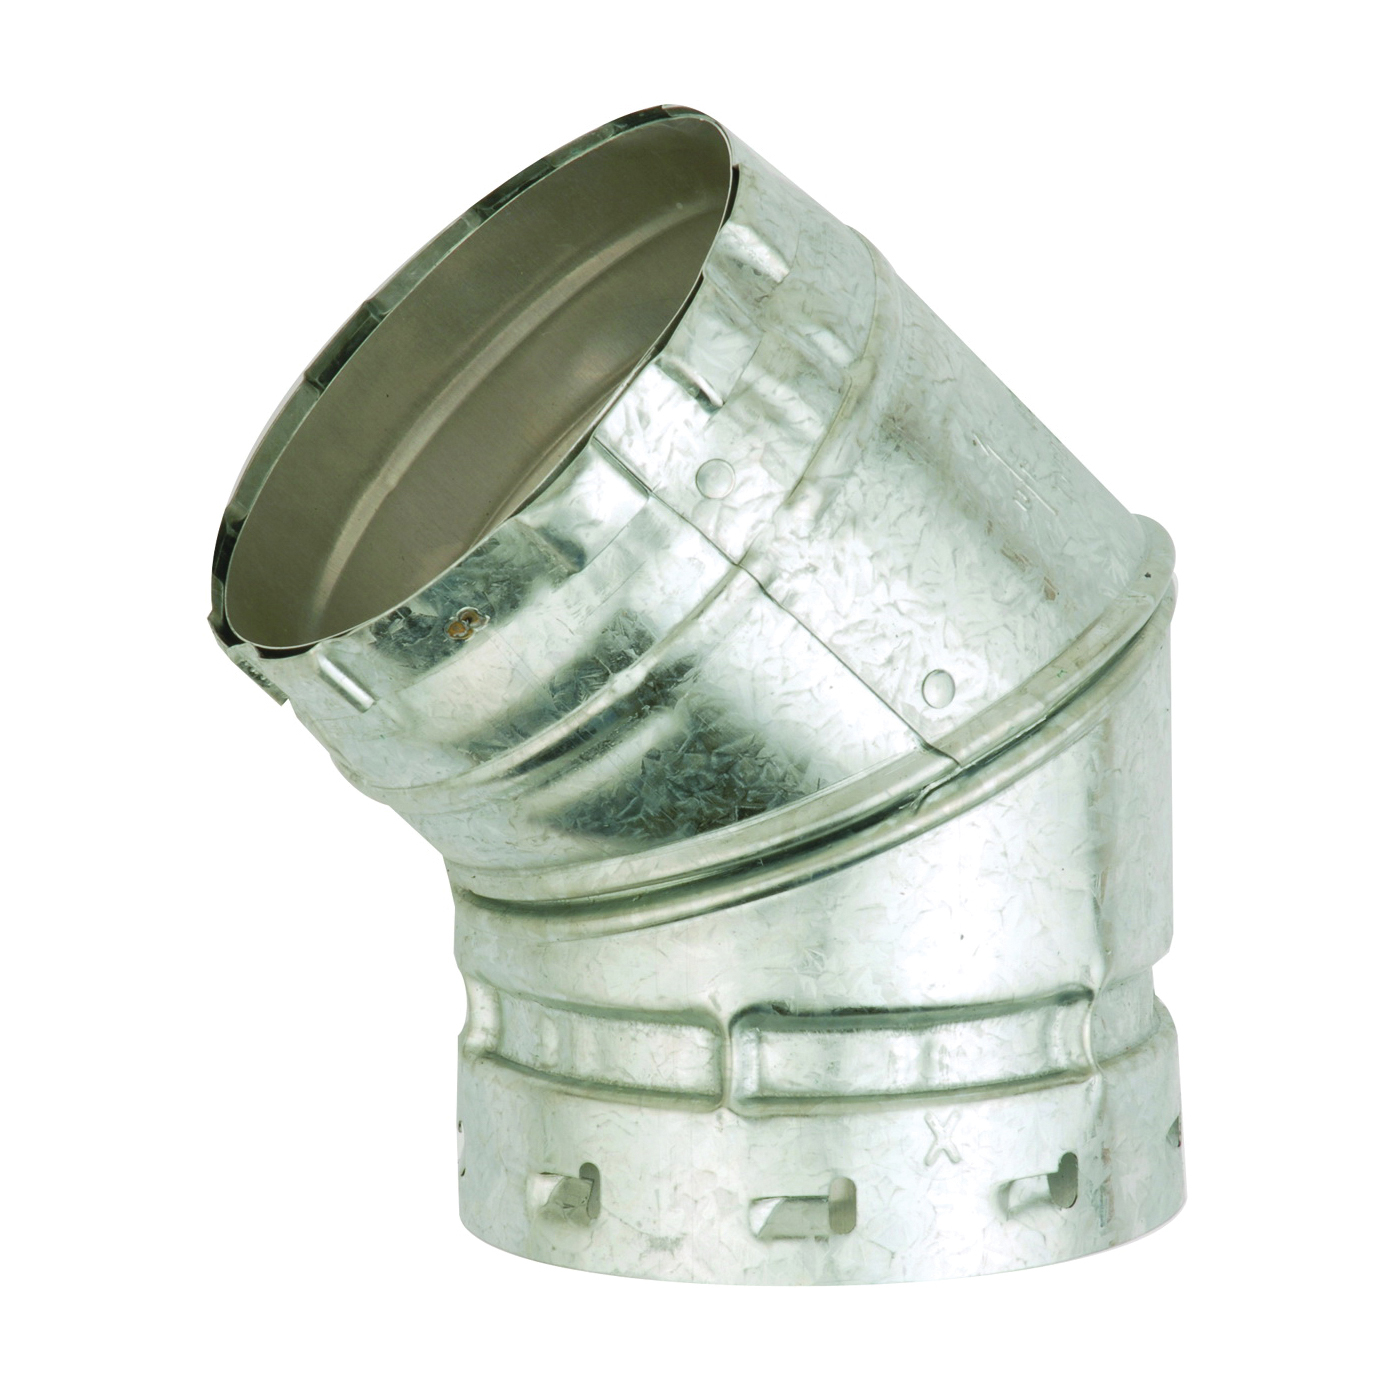 Picture of AmeriVent 5E45 Elbow, 5 in Connection, 0.018 Gauge, Aluminum/Steel, Galvanized